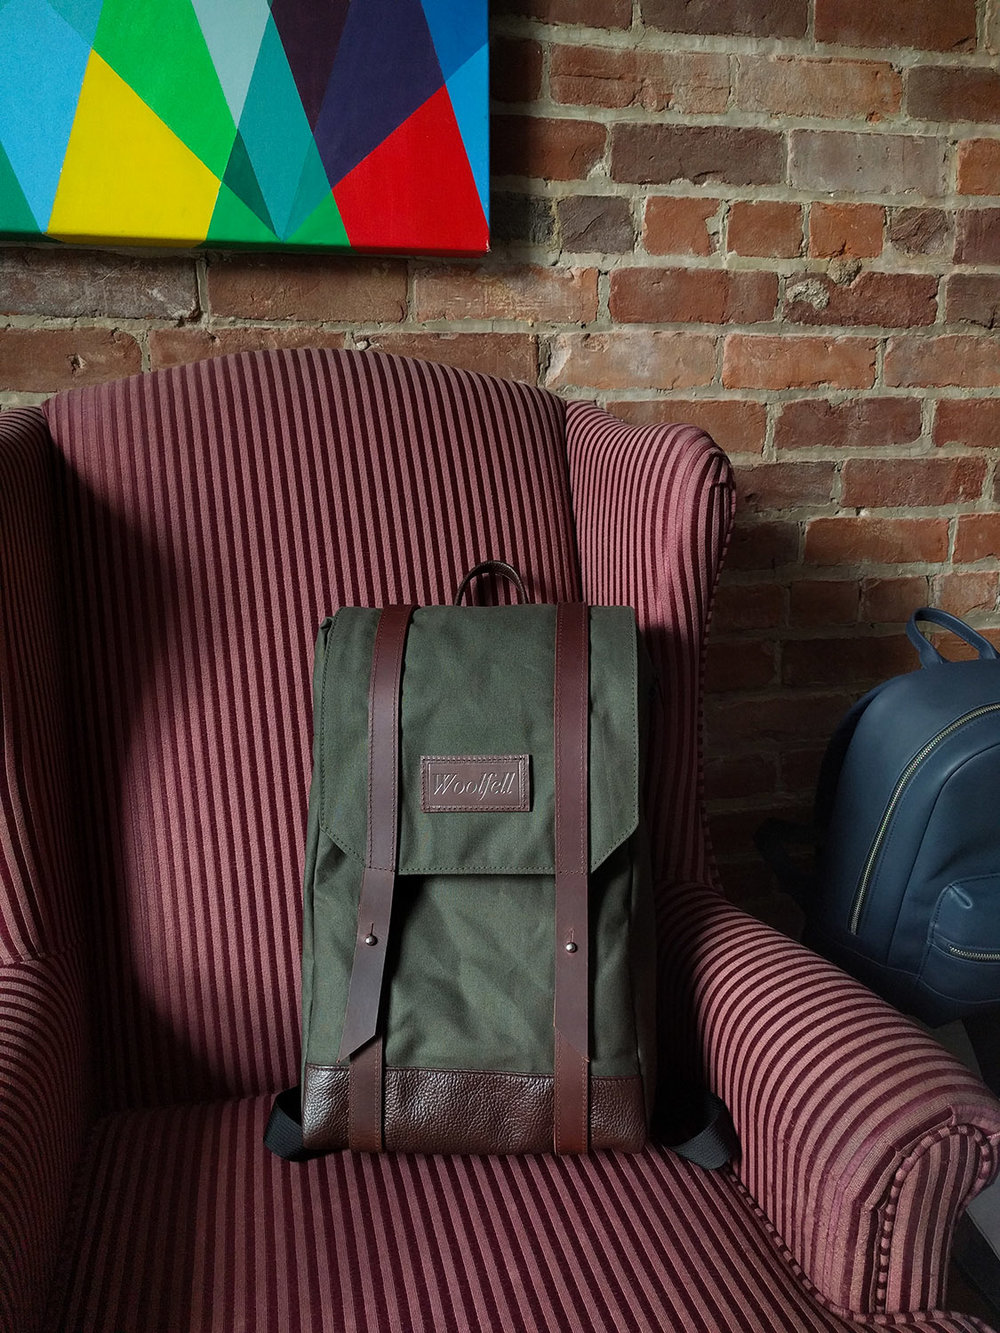 Green 'Warrior' backpack with chocolate brown leather